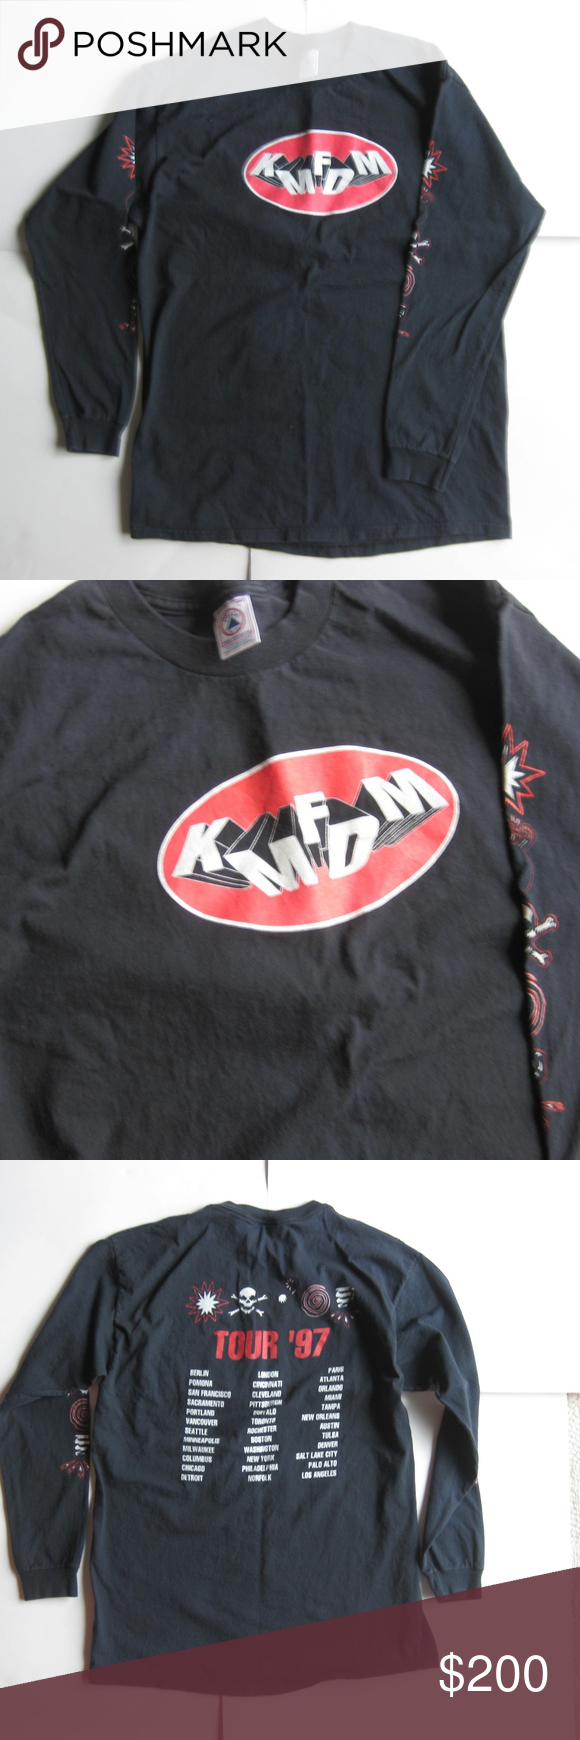 Vintage 90s Kmfdm 1997 Tour Long Sleeve T Shirt My Posh Picks